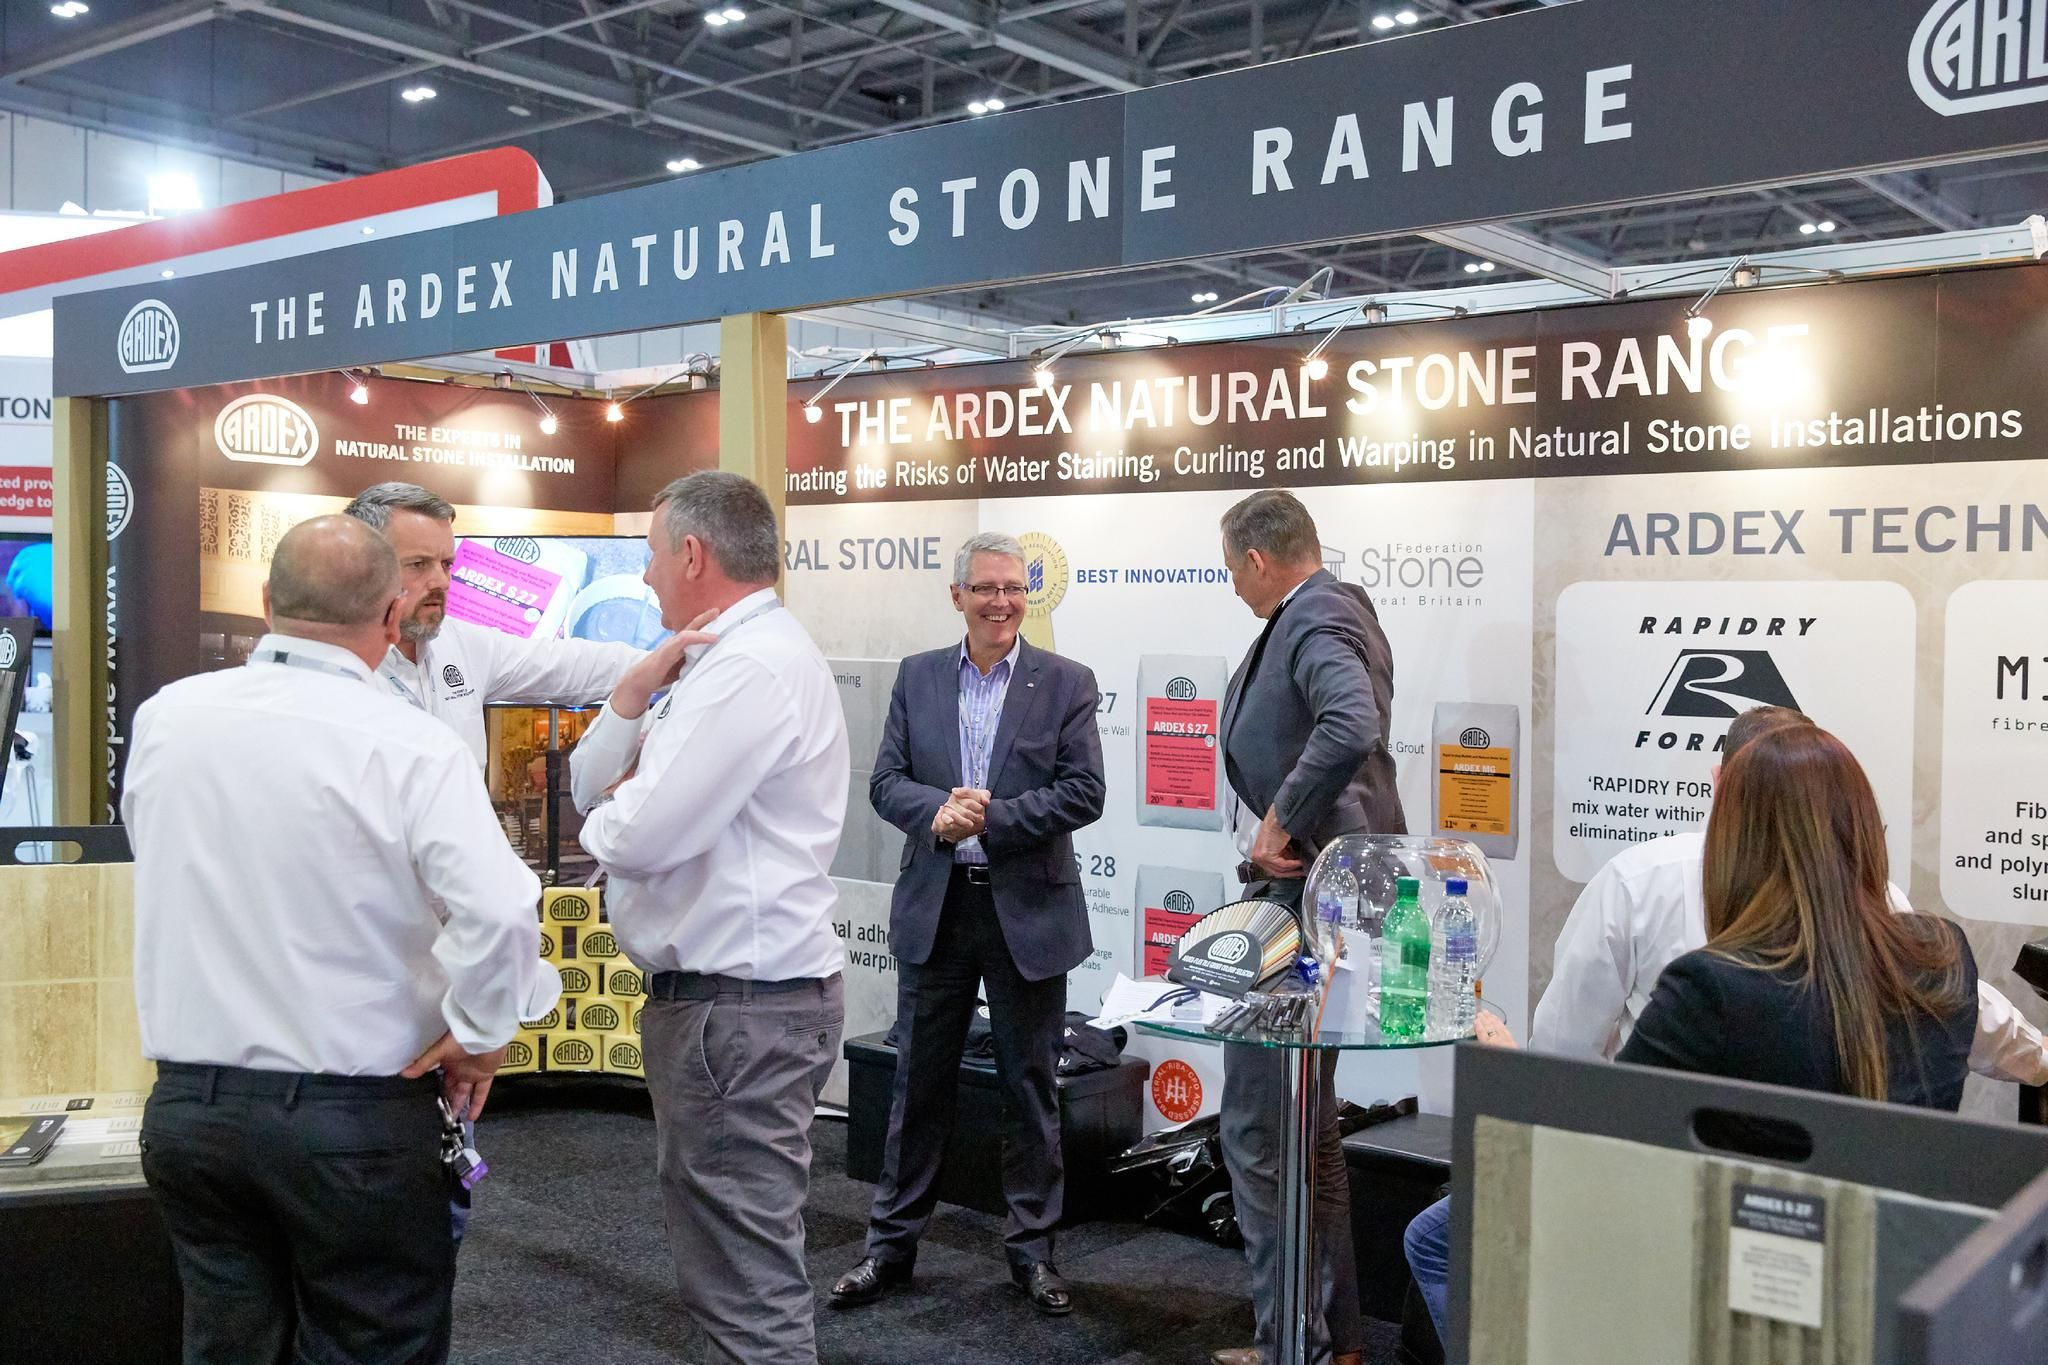 Ardex at the Natural Stone Show